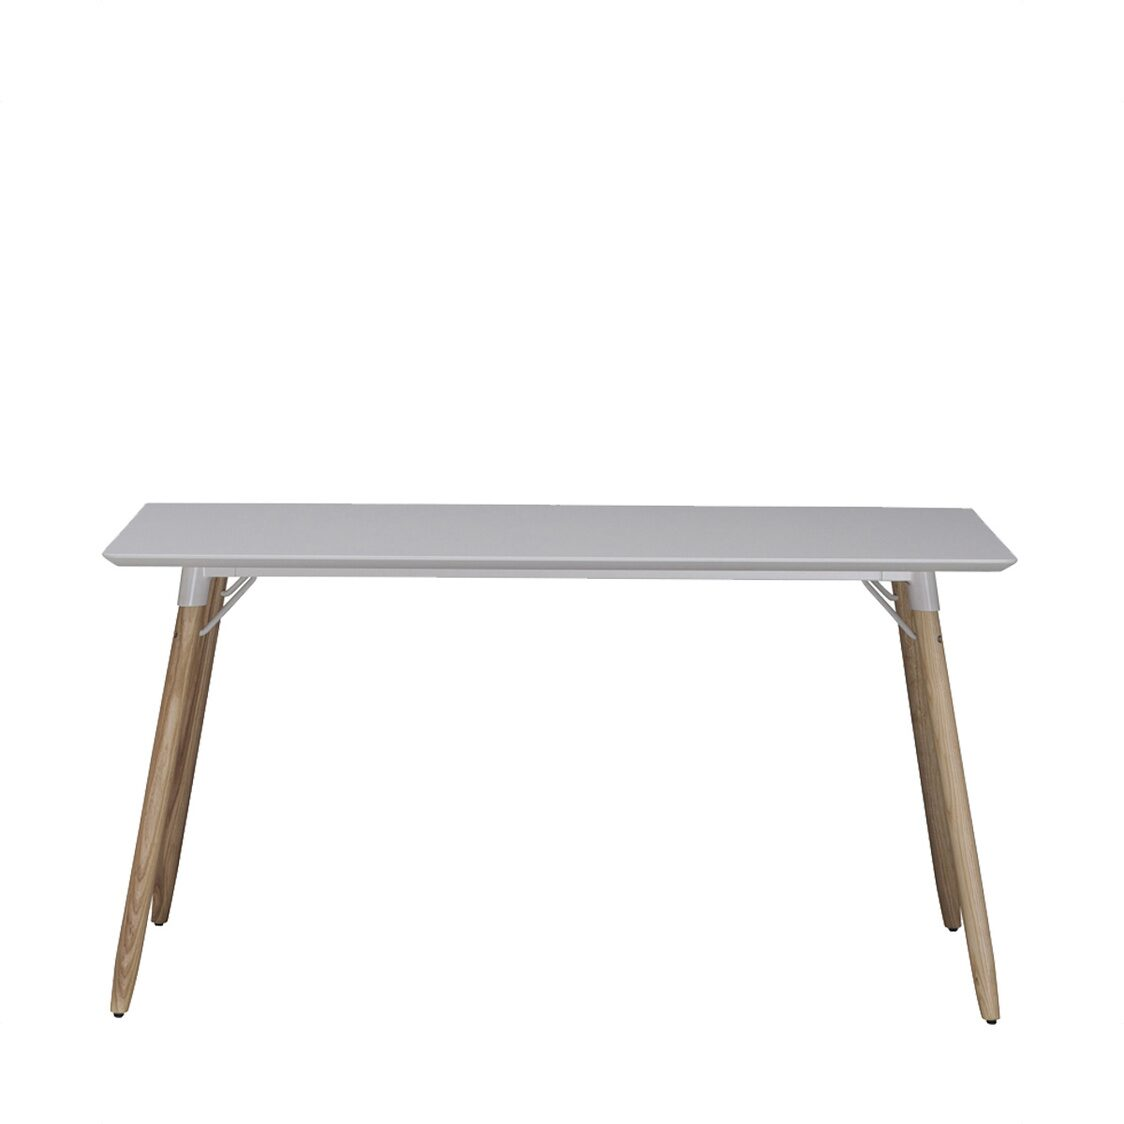 BIBI Dining Table for 4  HT30T14EL-WWAD